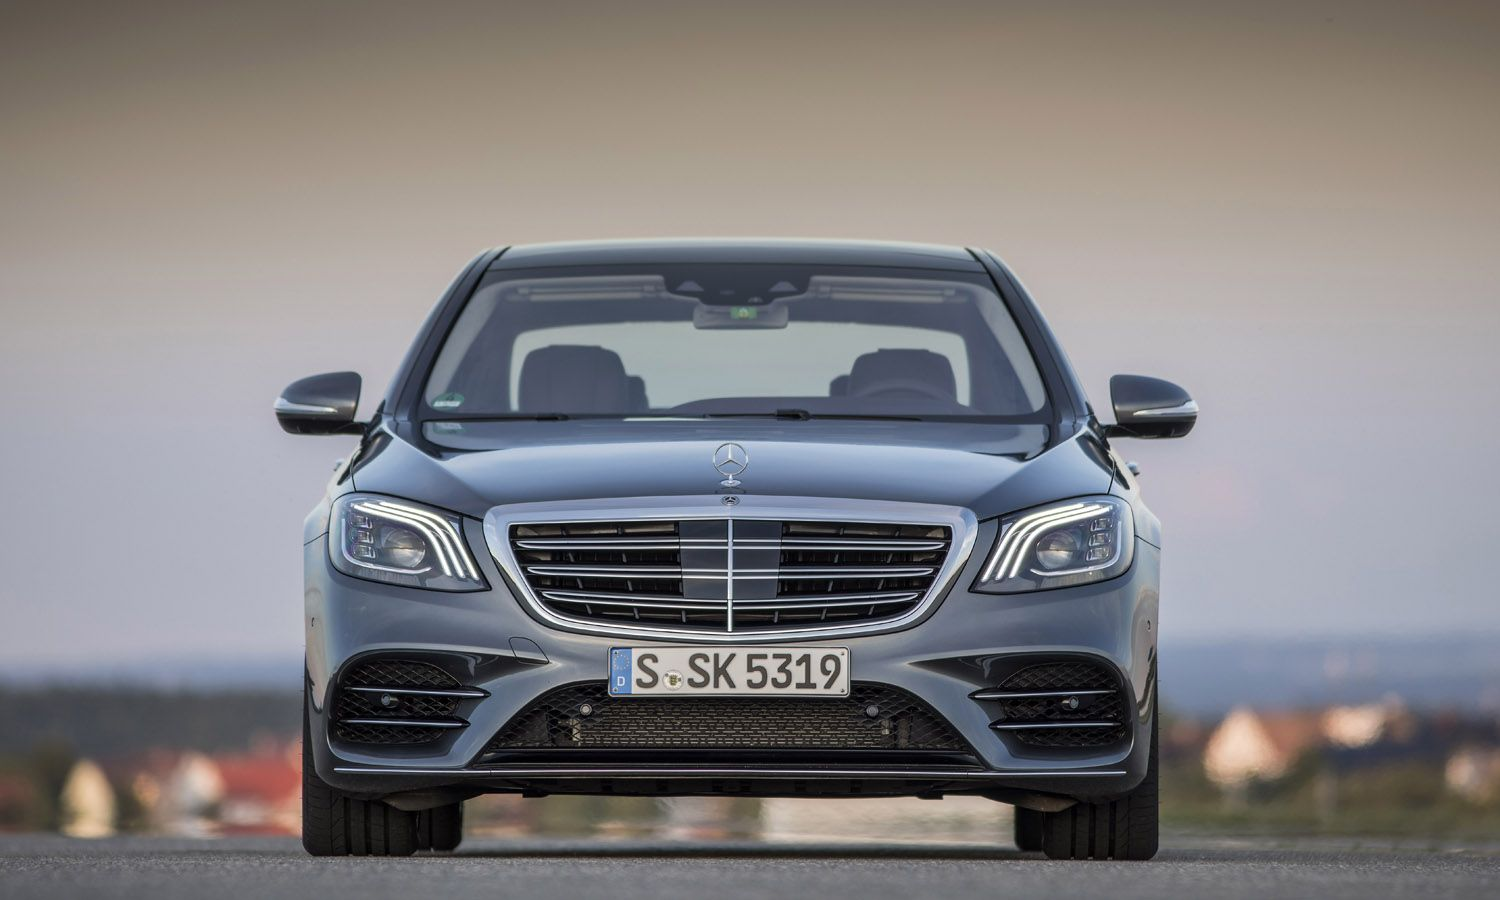 What You Need To Know About The New Mercedes-Benz S-Class